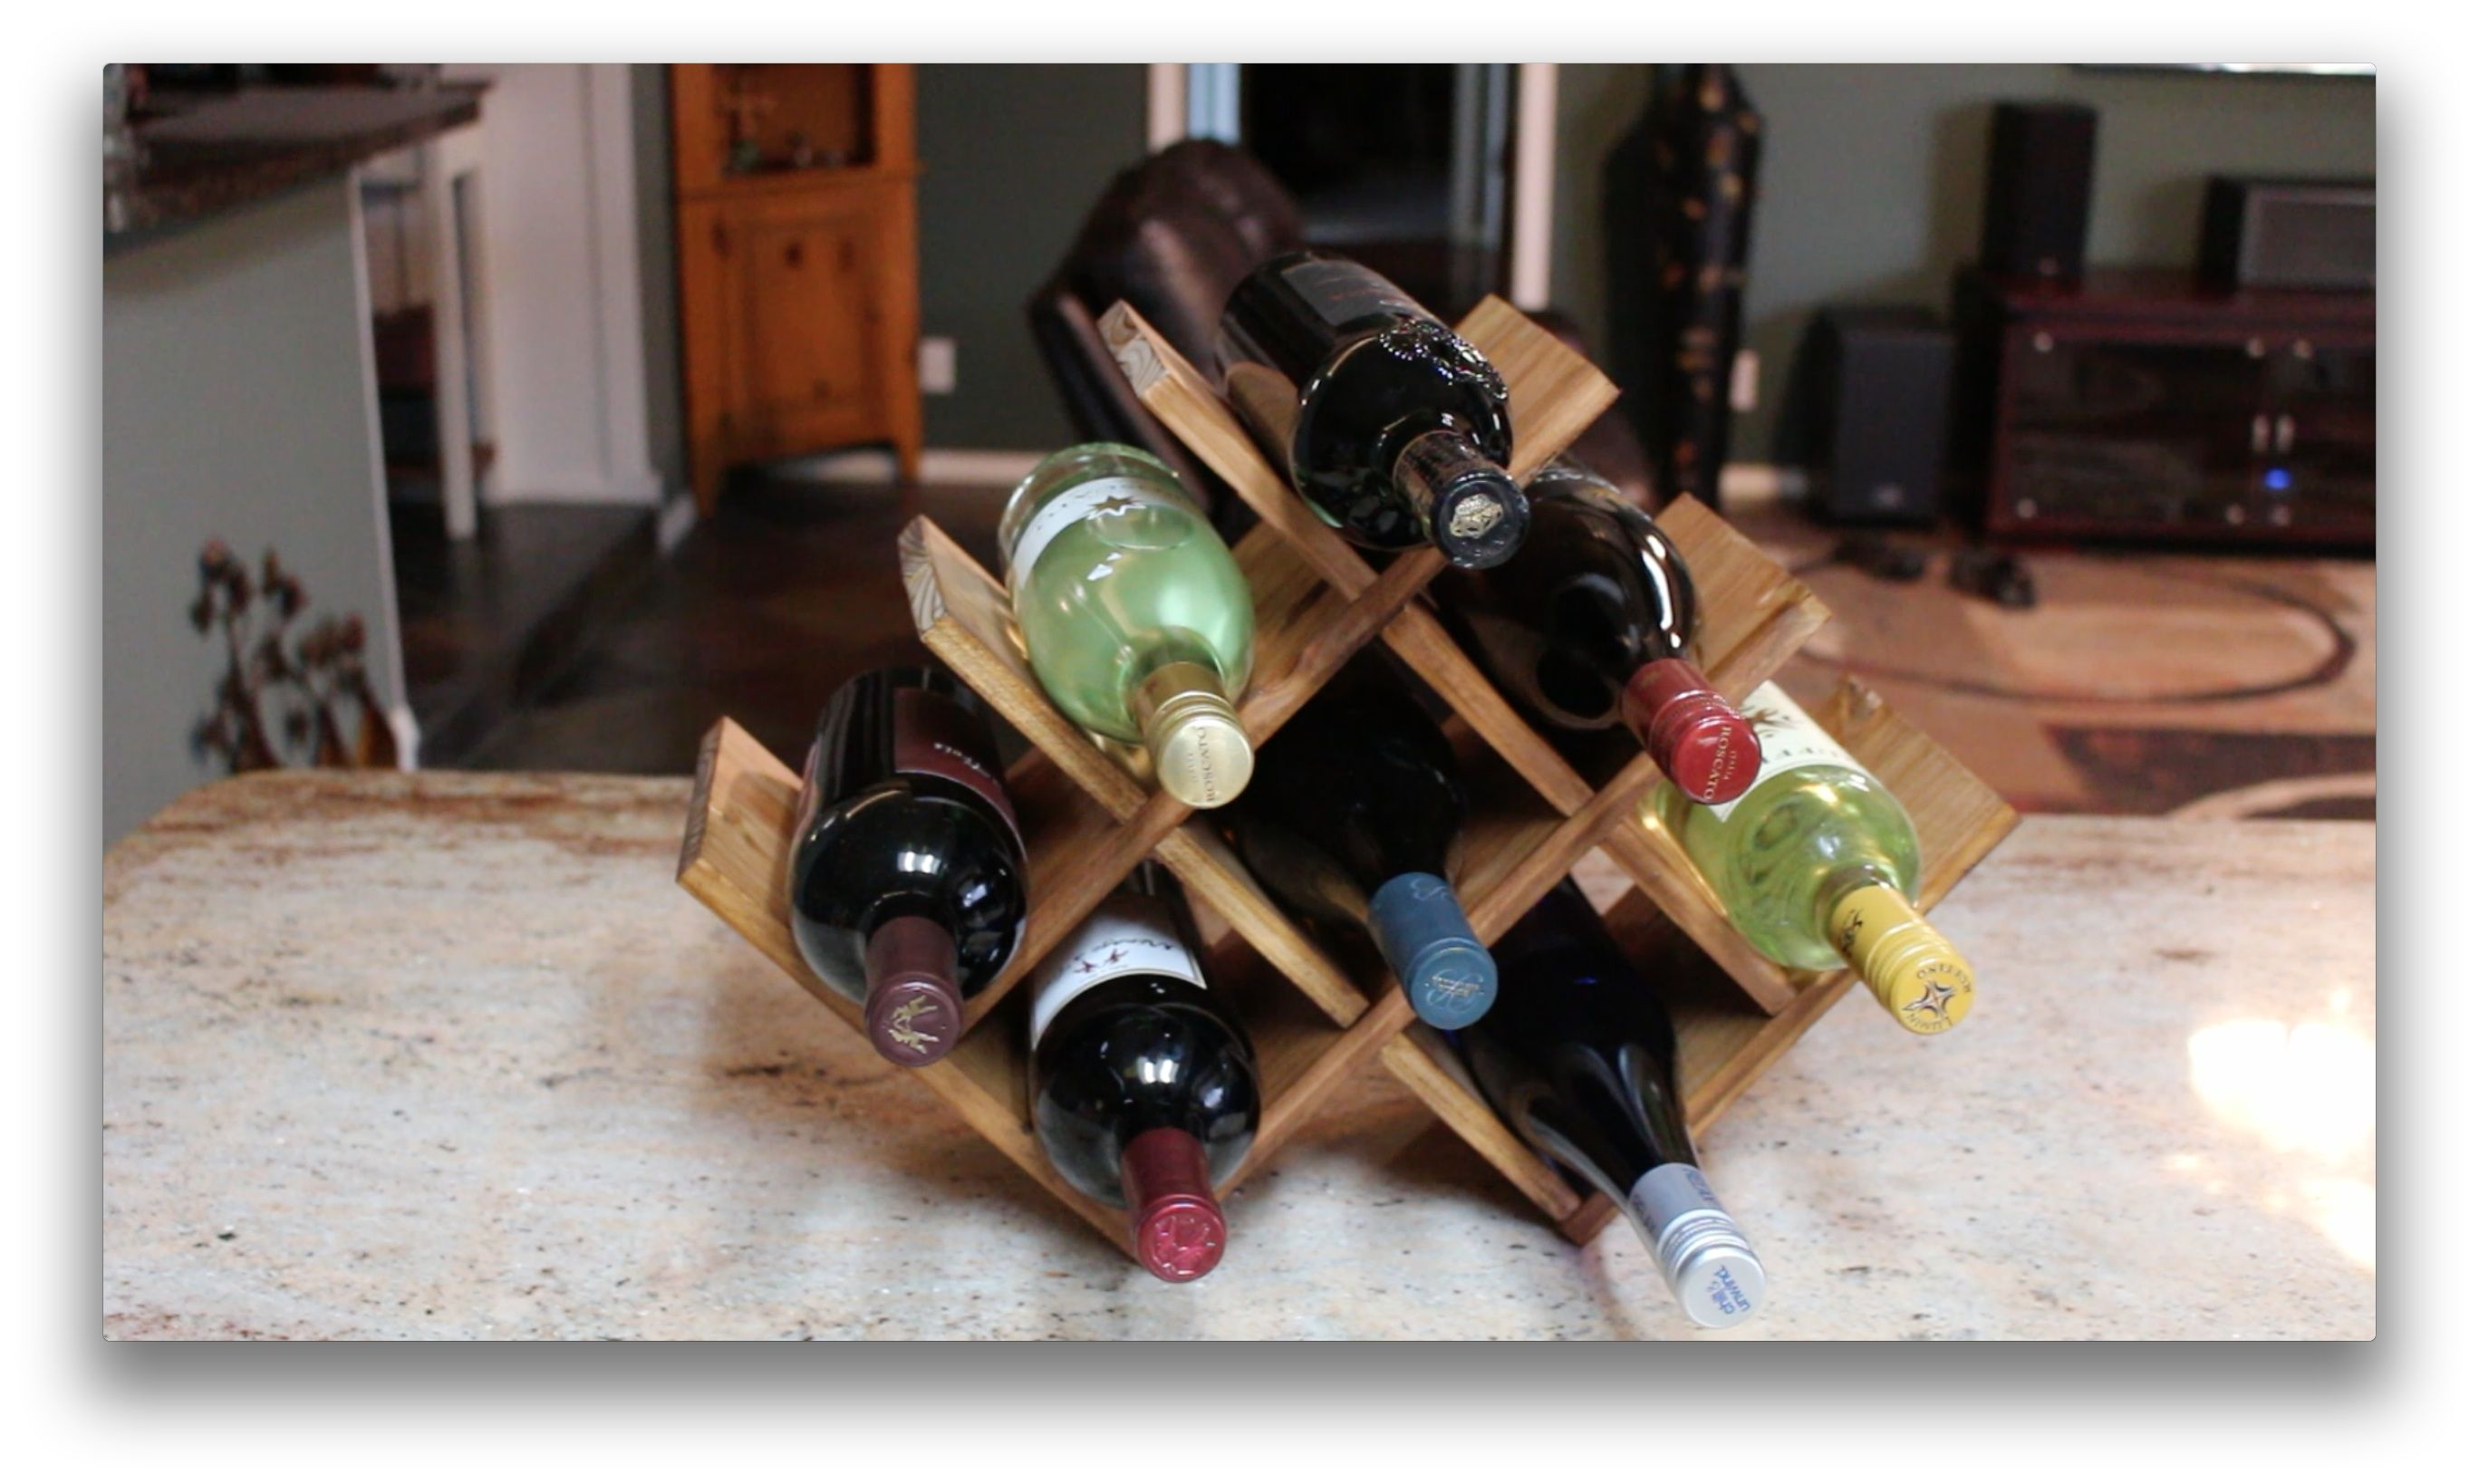 Diy Countertop Wine Rack Wine Rack Diy Wine Countertop Wine Rack